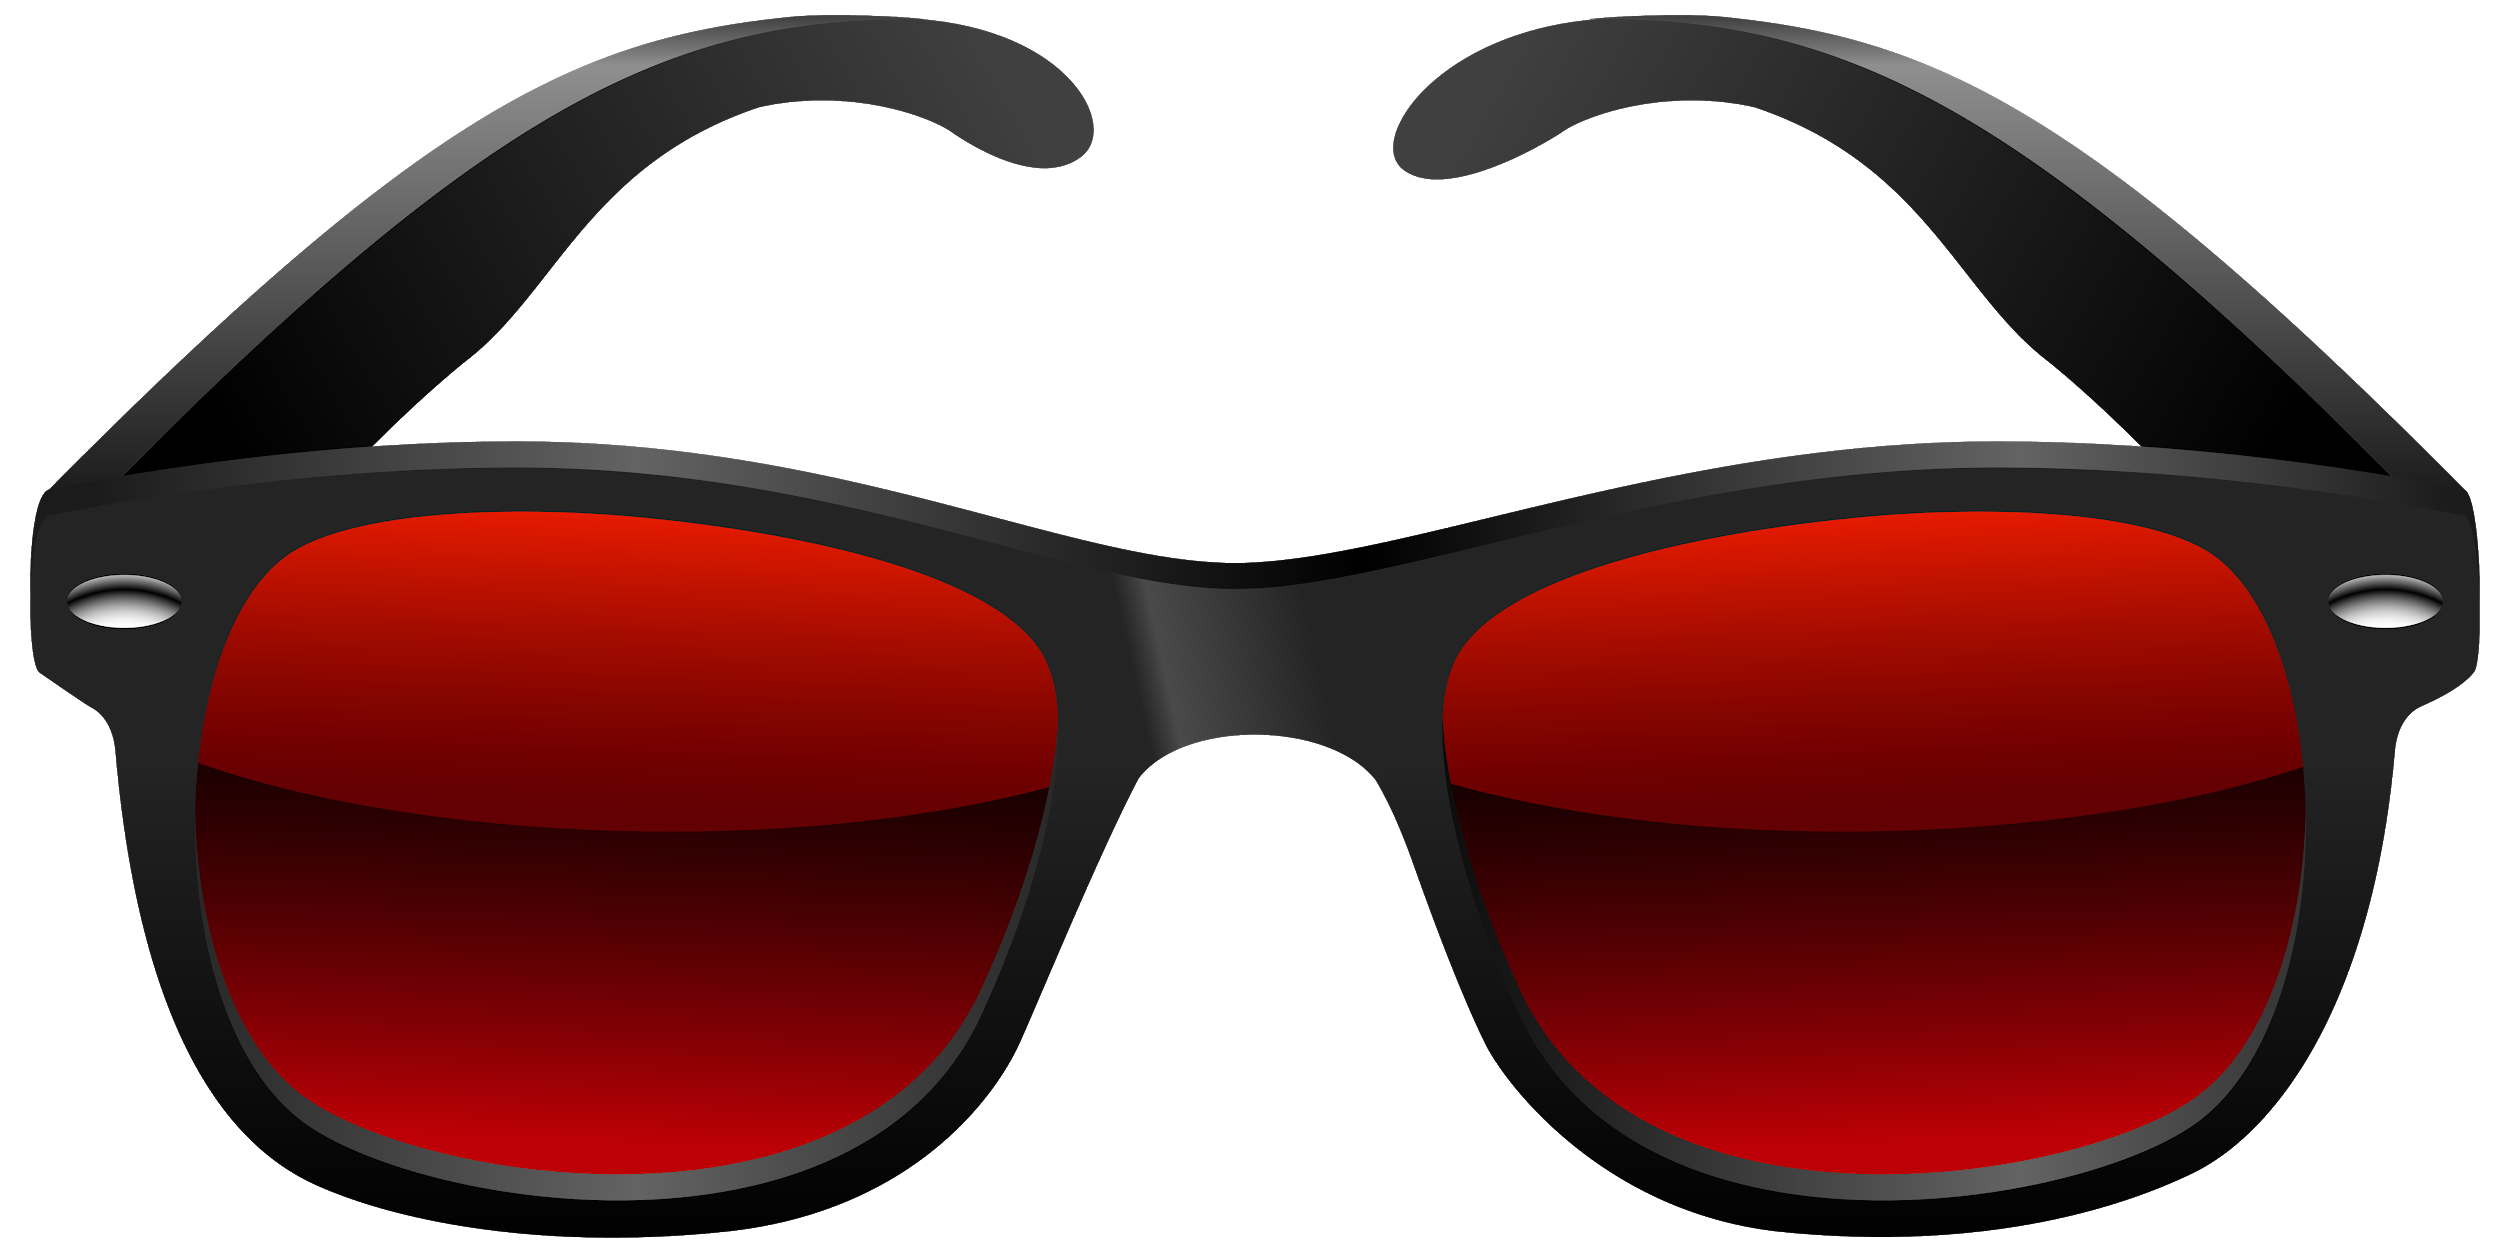 Sunglasses Goggles Brand Glasses Png Image Red Sunglasses Sunglasses Black And Red